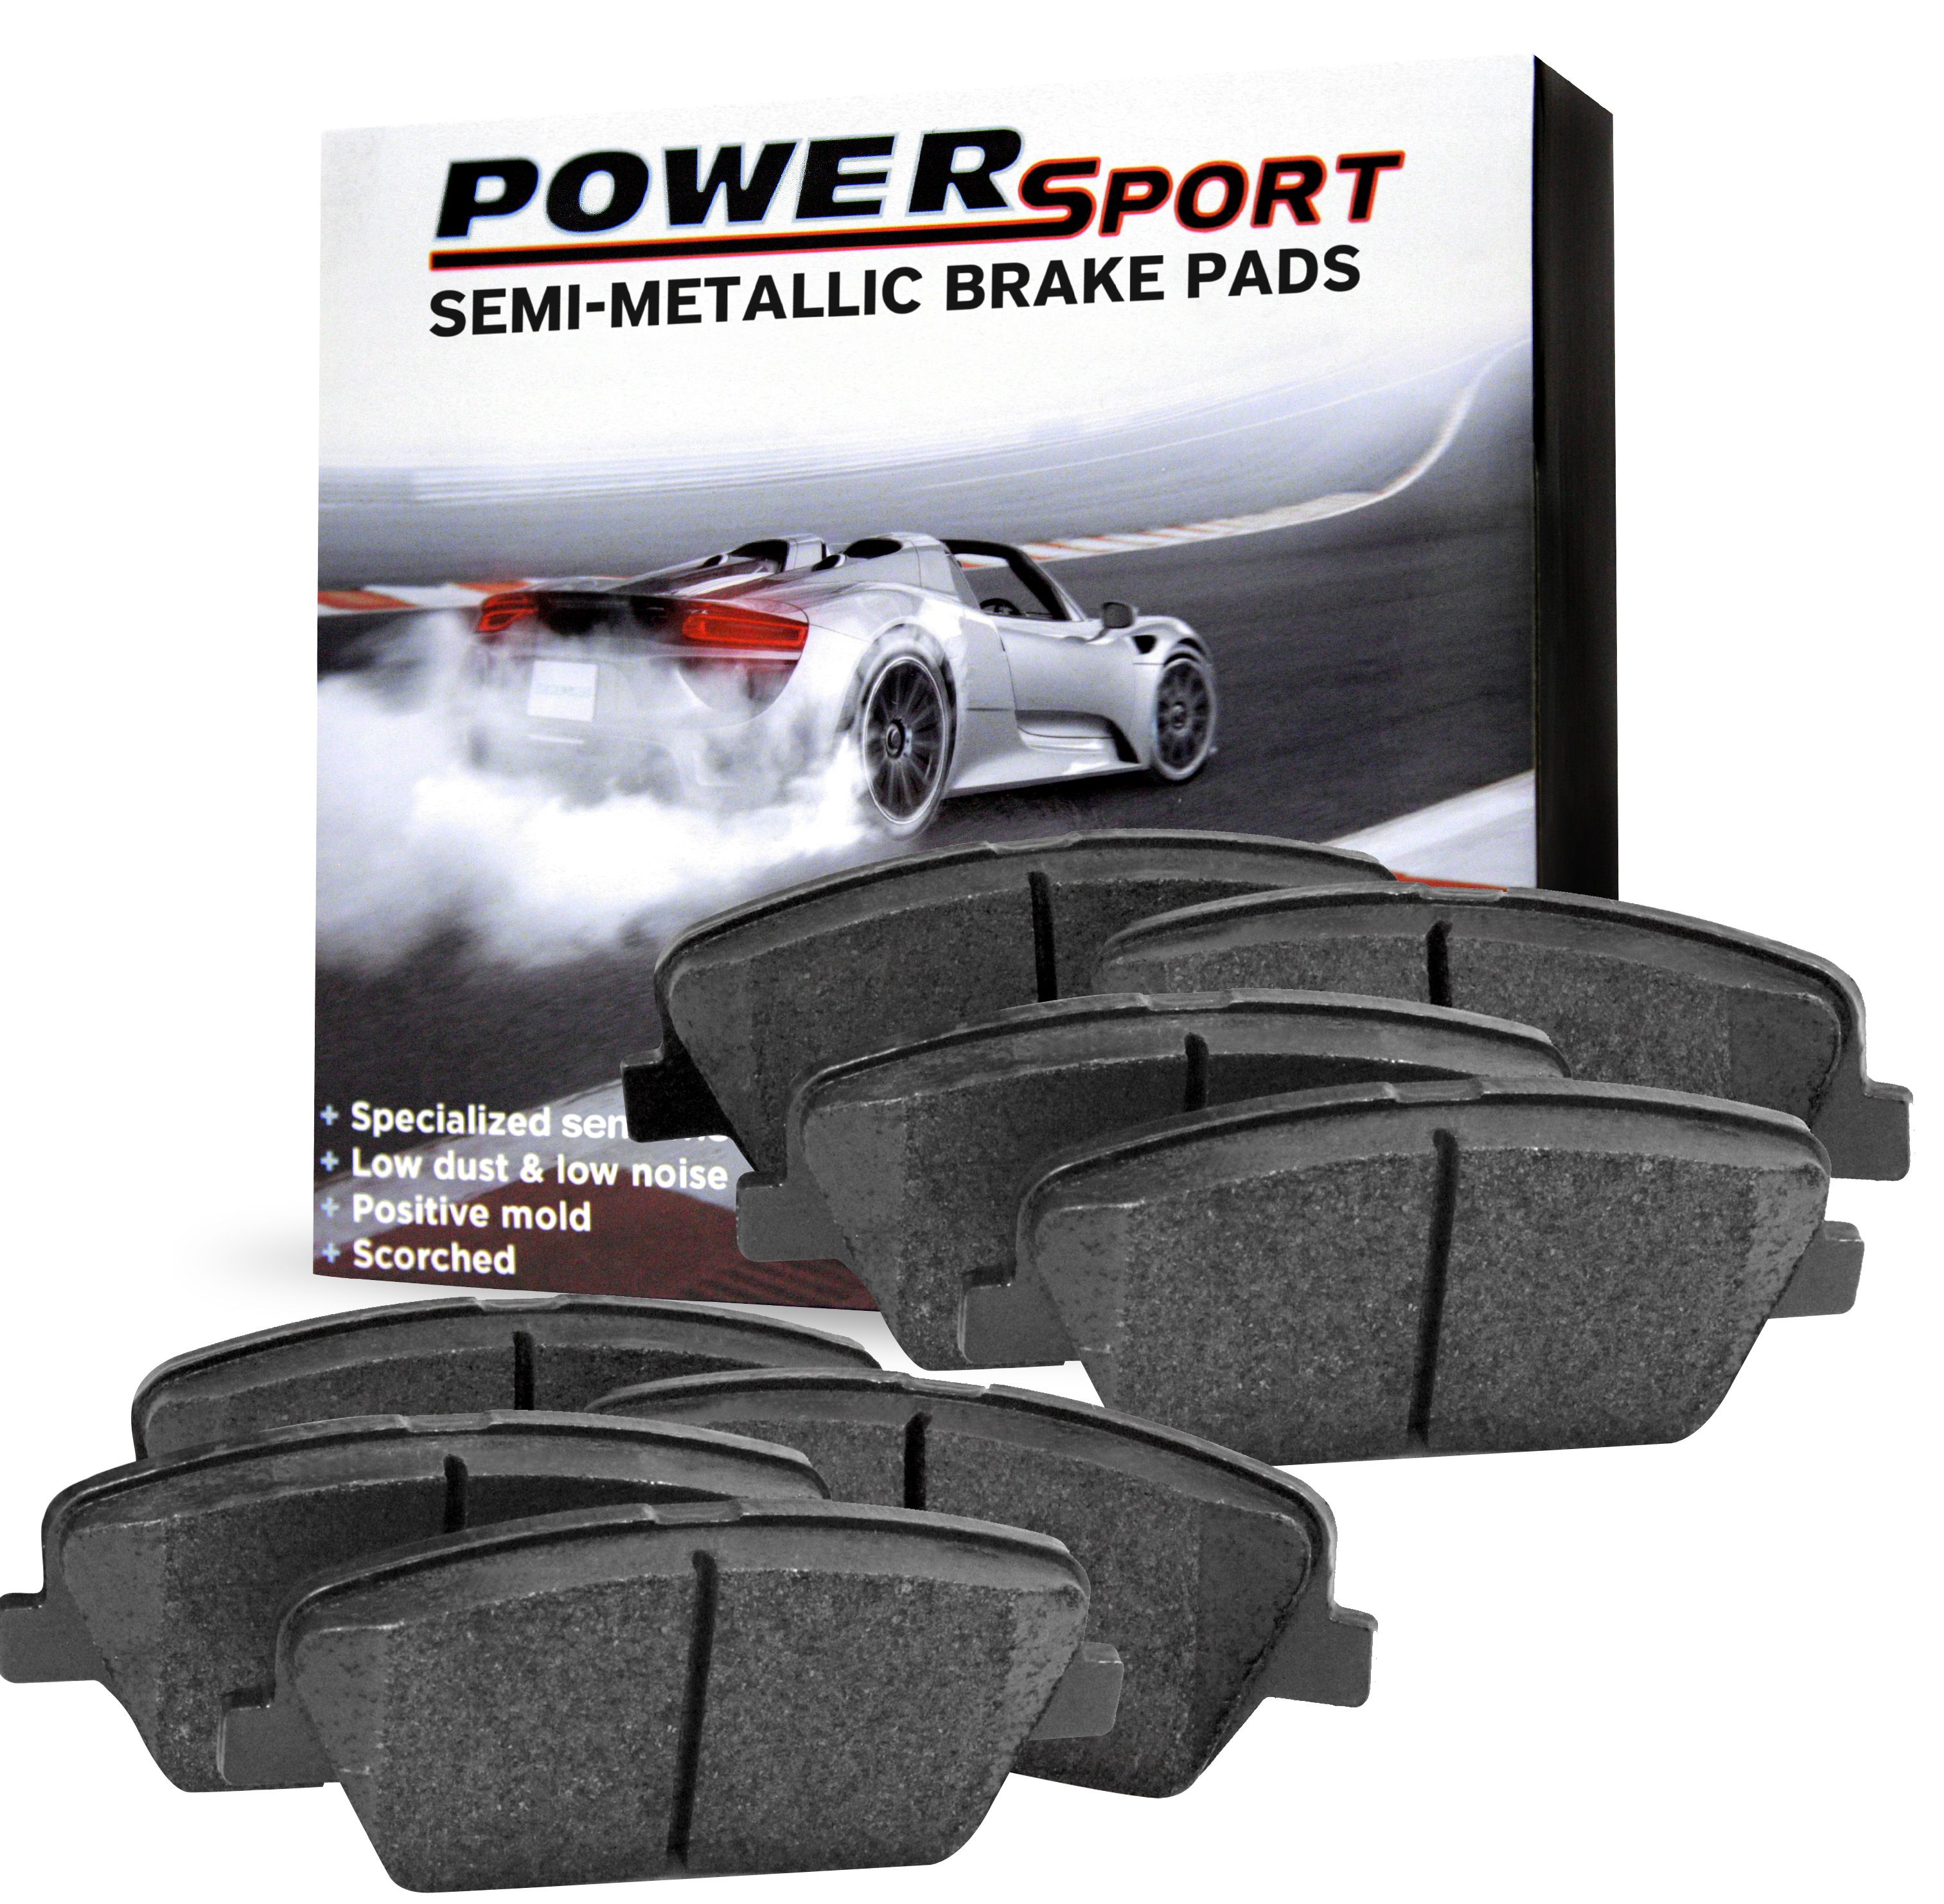 2003 2004 2005 2006 For Mercedes-Benz E320 Rear Semi Metallic Brake Pads